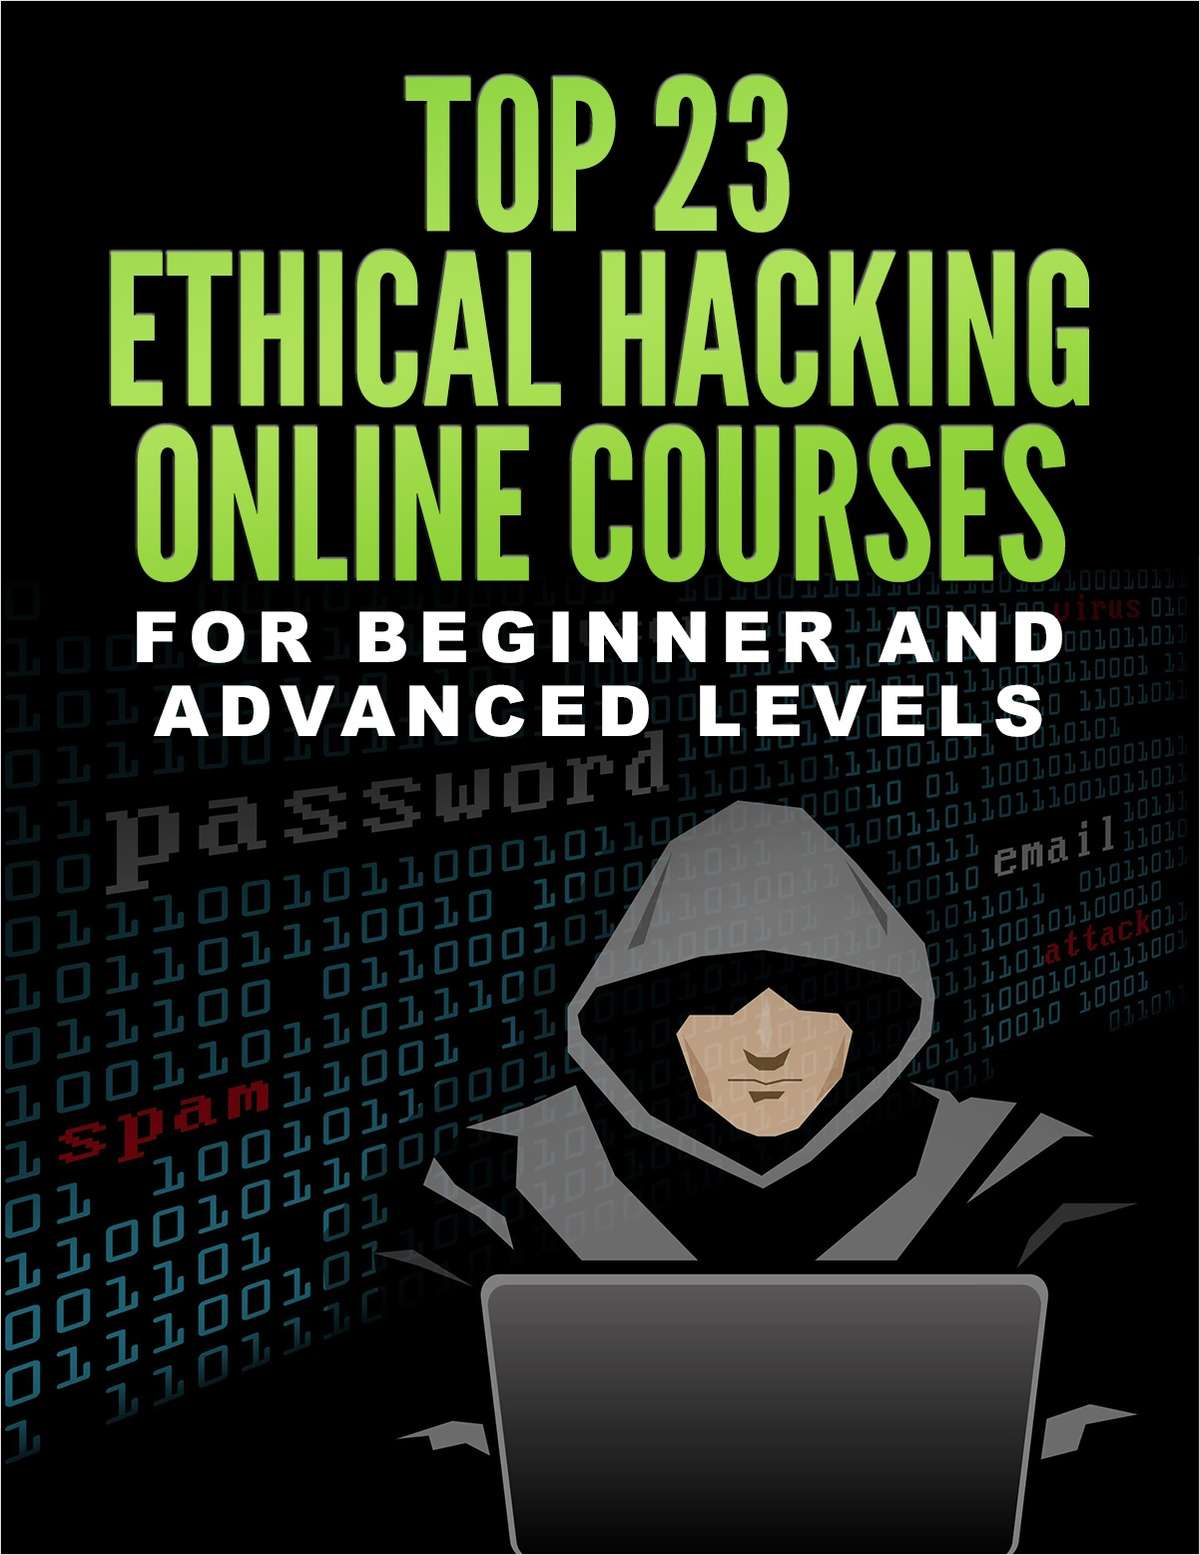 Top 23 Ethical Hacking Online Courses for Beginner and Advanced Levels